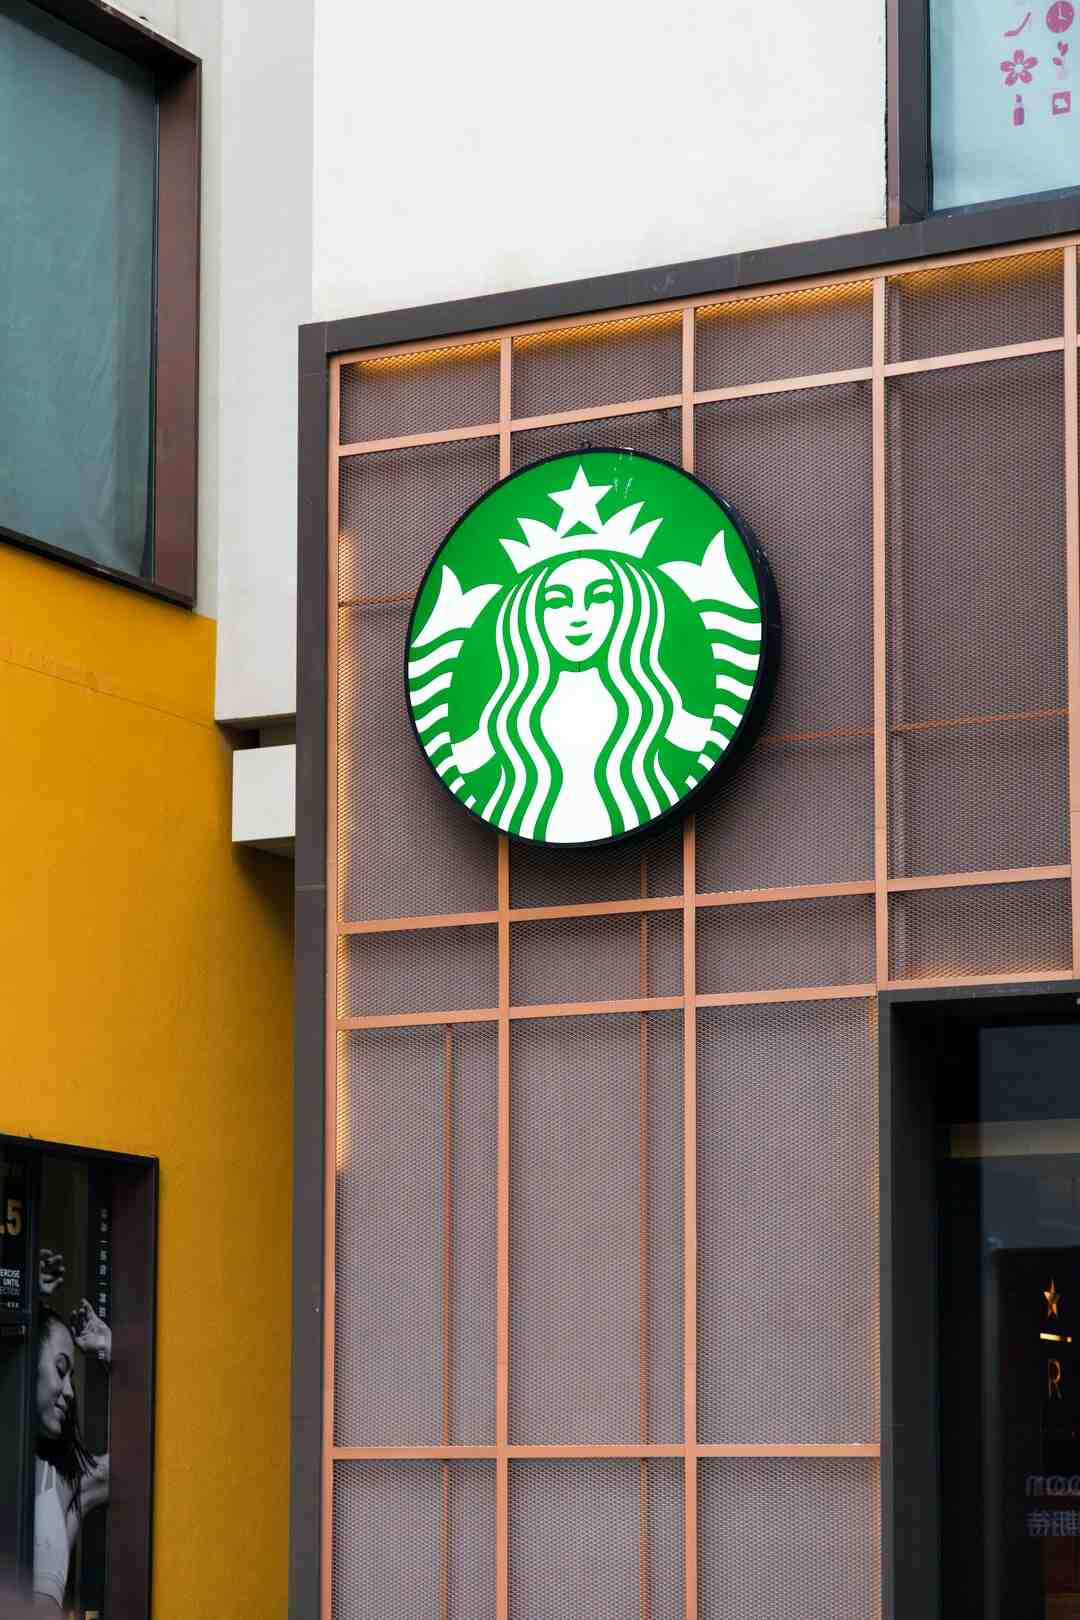 How much is a venti at Starbucks?